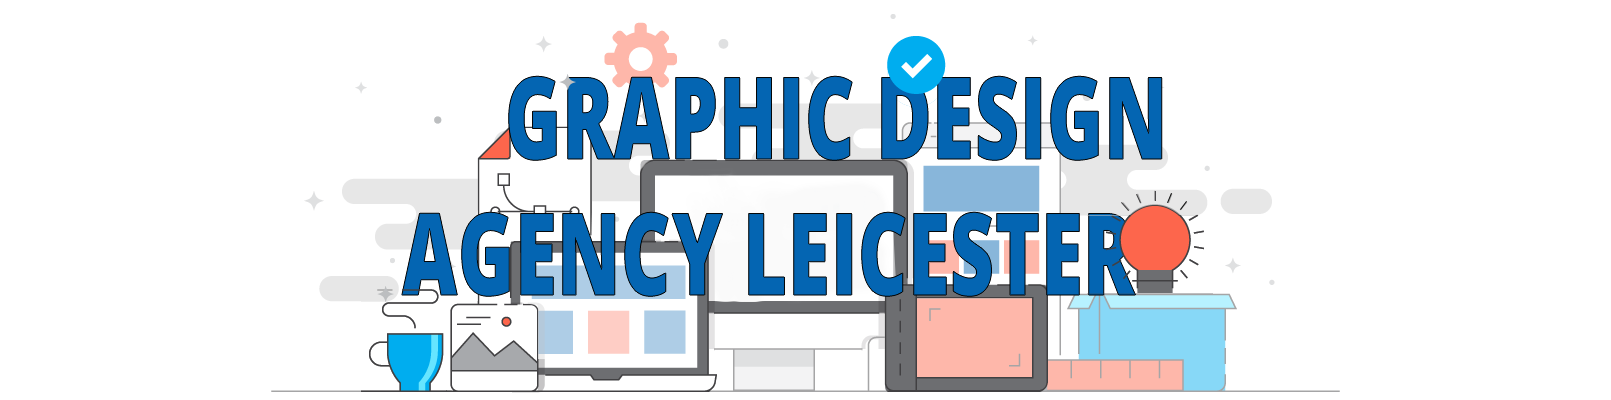 seek social graphic design agency leicester header with transparent background